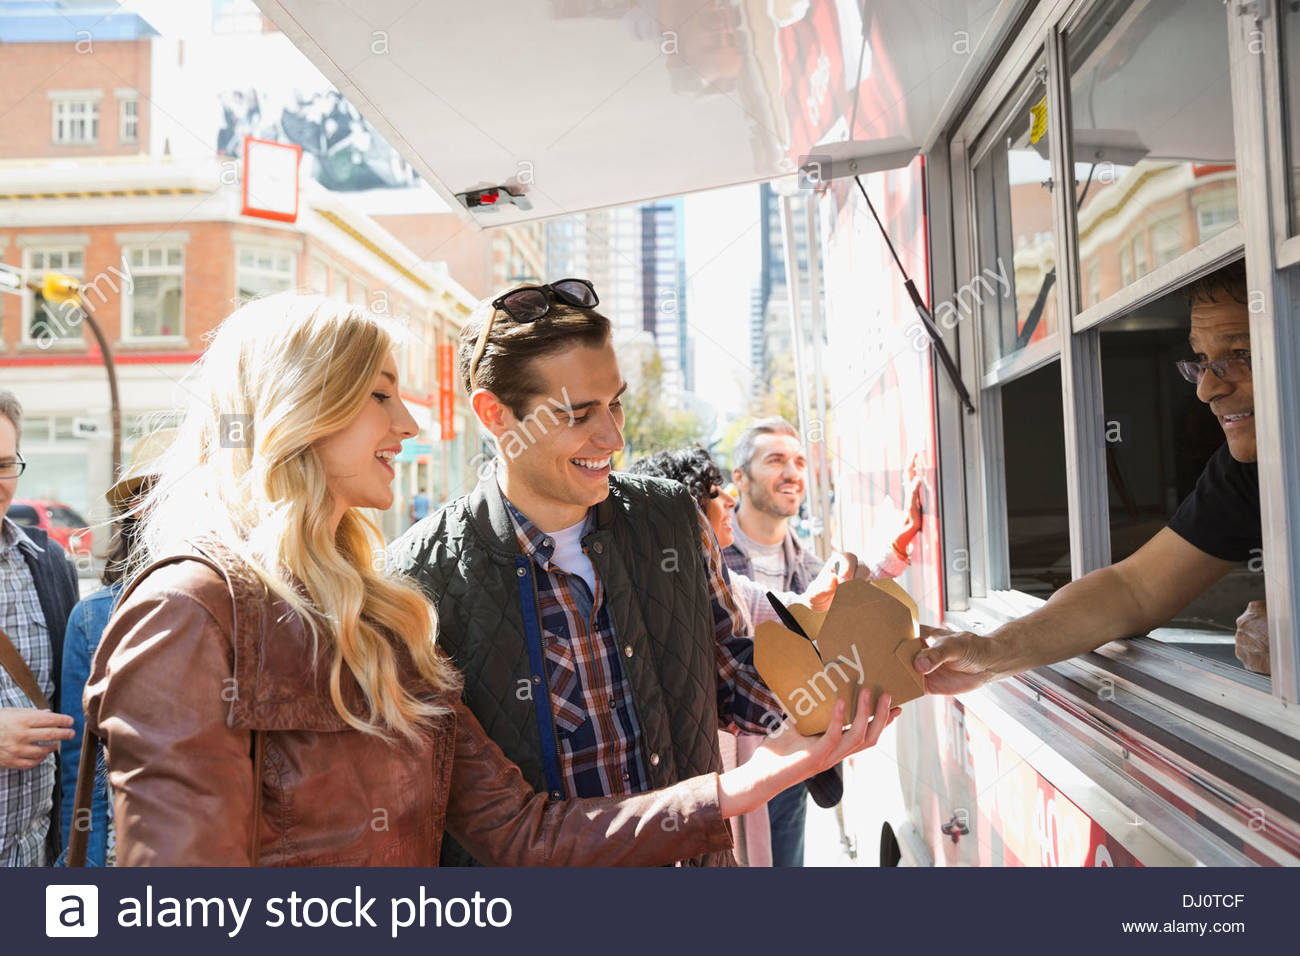 Couple ordering from a food truck - Stock Image